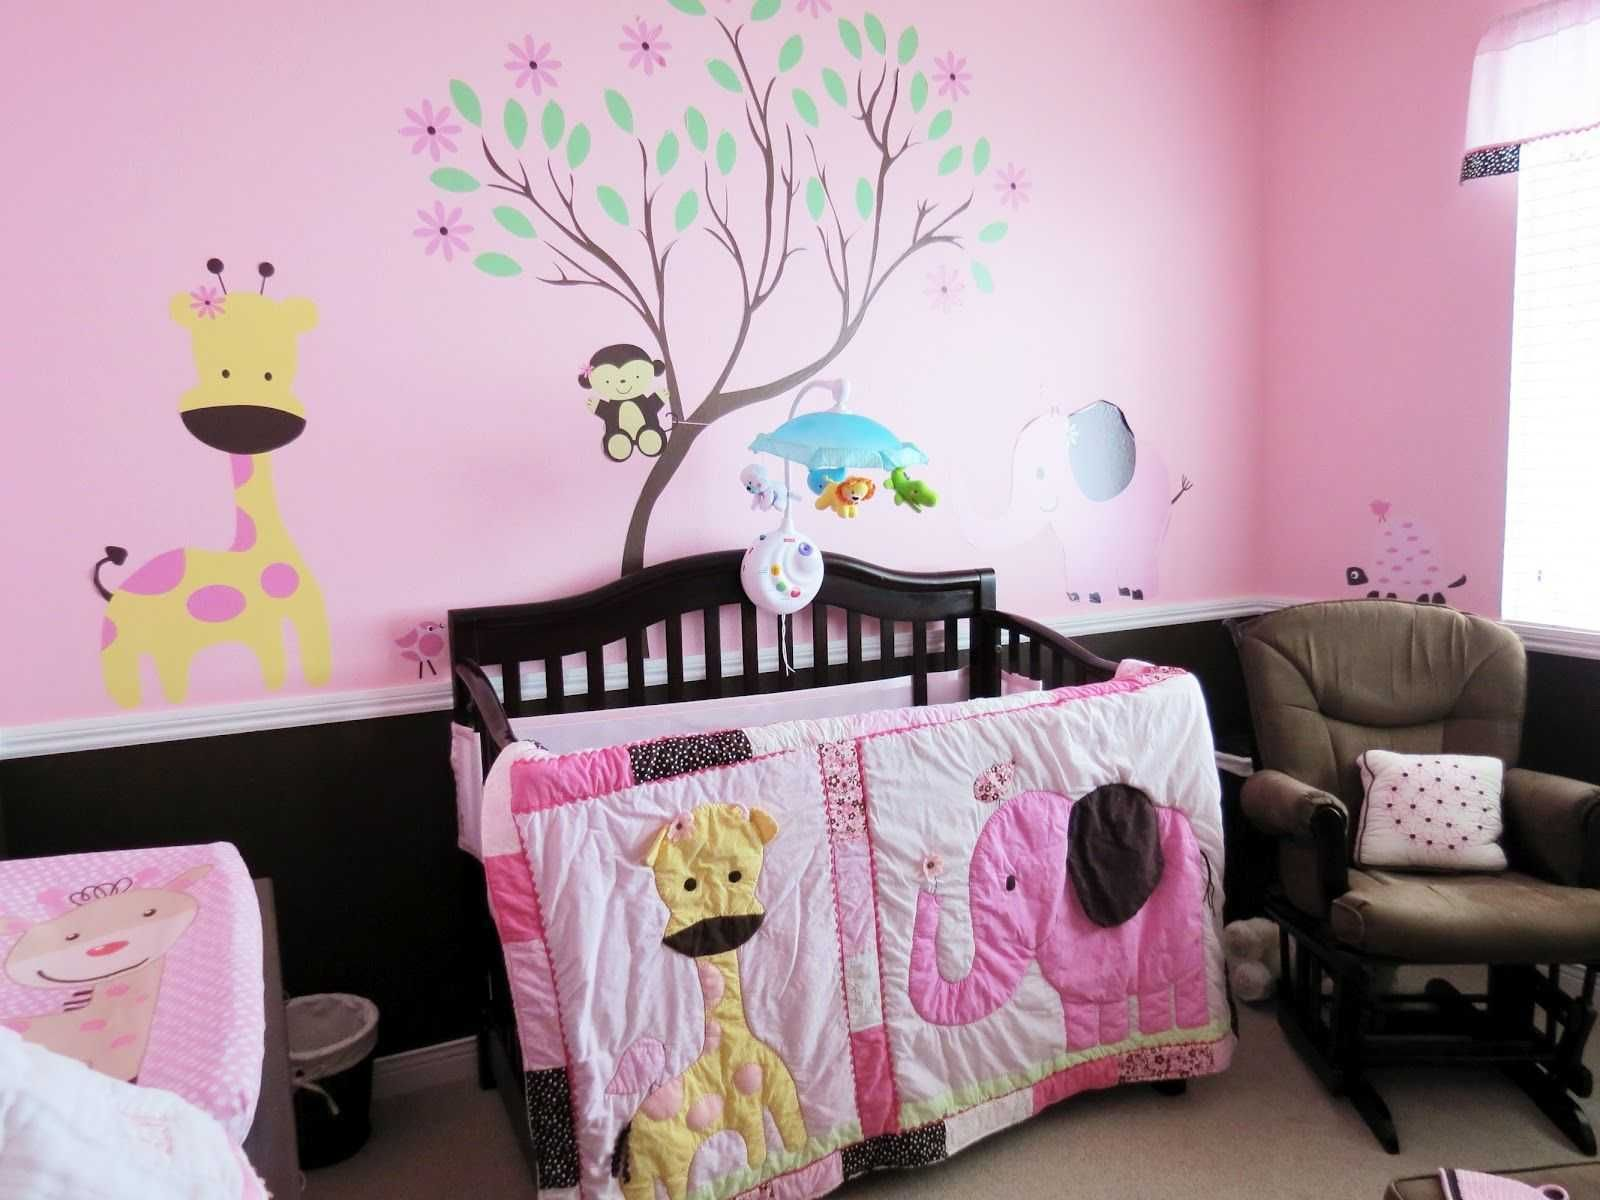 baby room paint ideas on Give Me 13 Minutes I Ll Give You The Truth About Cute Wallpaper For Baby Room Ideas Manlikemarvinsparks Com Girls Room Paint Girls Bedroom Wallpaper Baby Girl Nursery Room